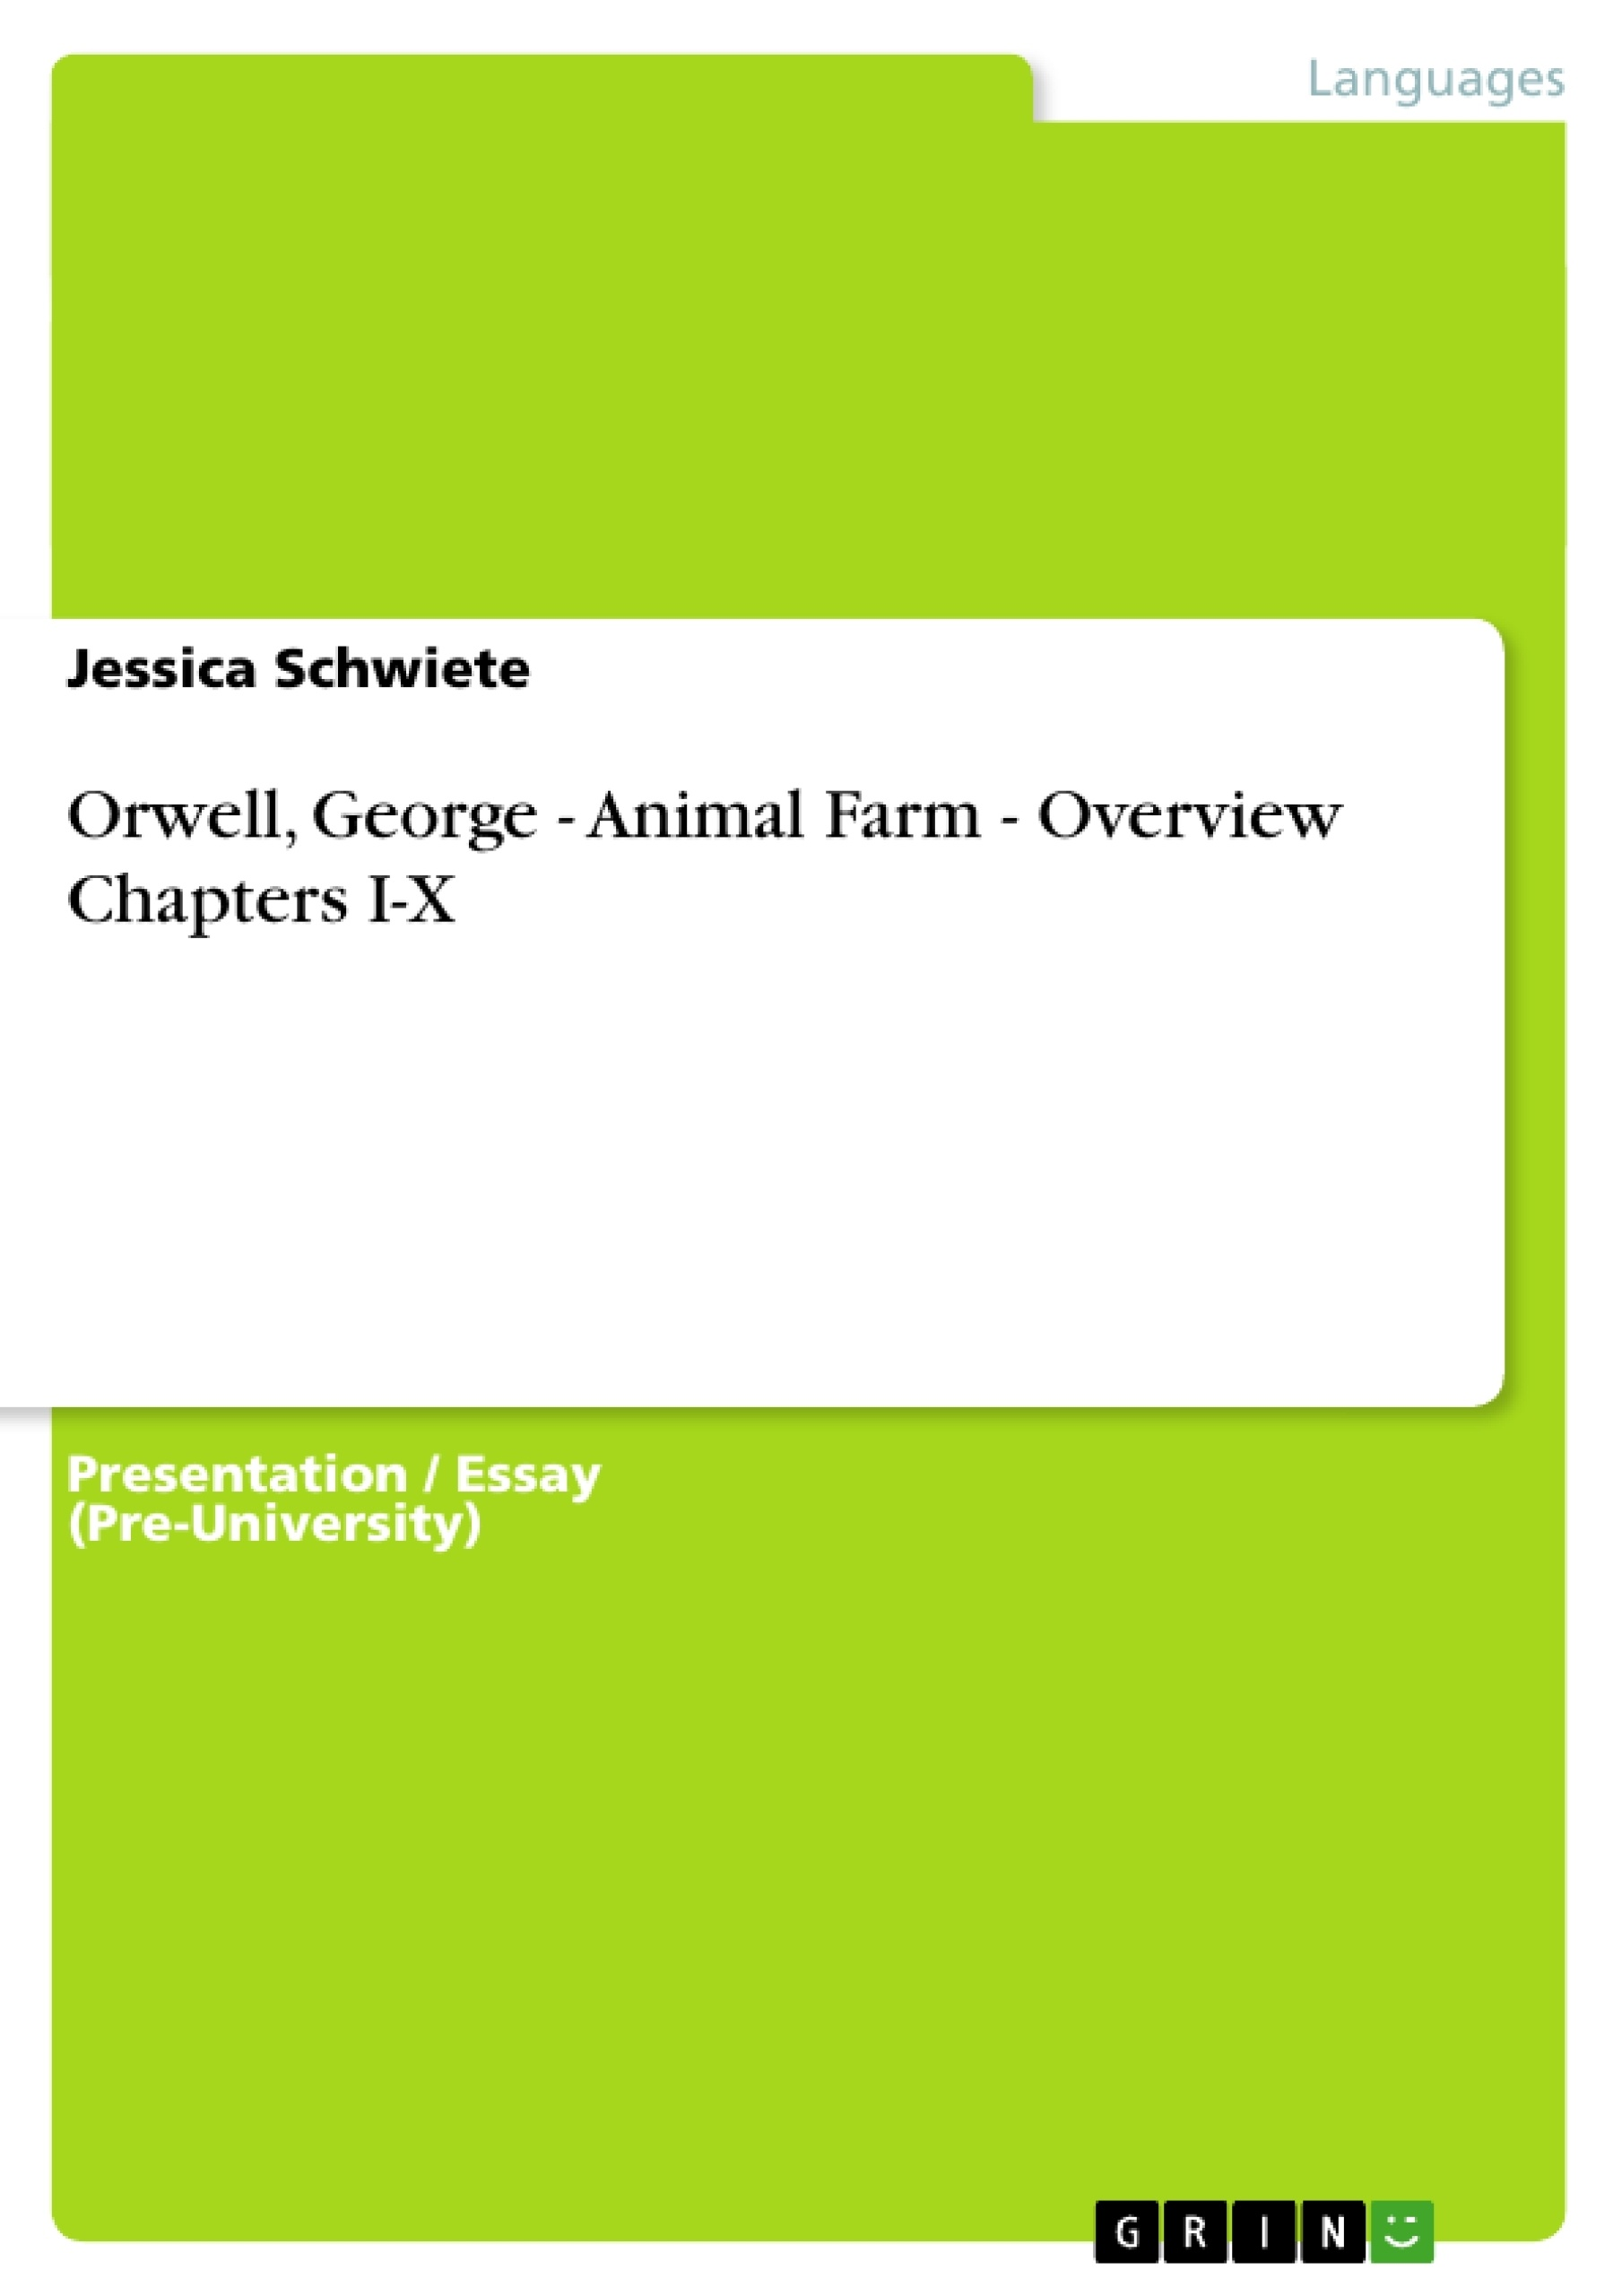 Title: Orwell, George - Animal Farm - Overview Chapters I-X